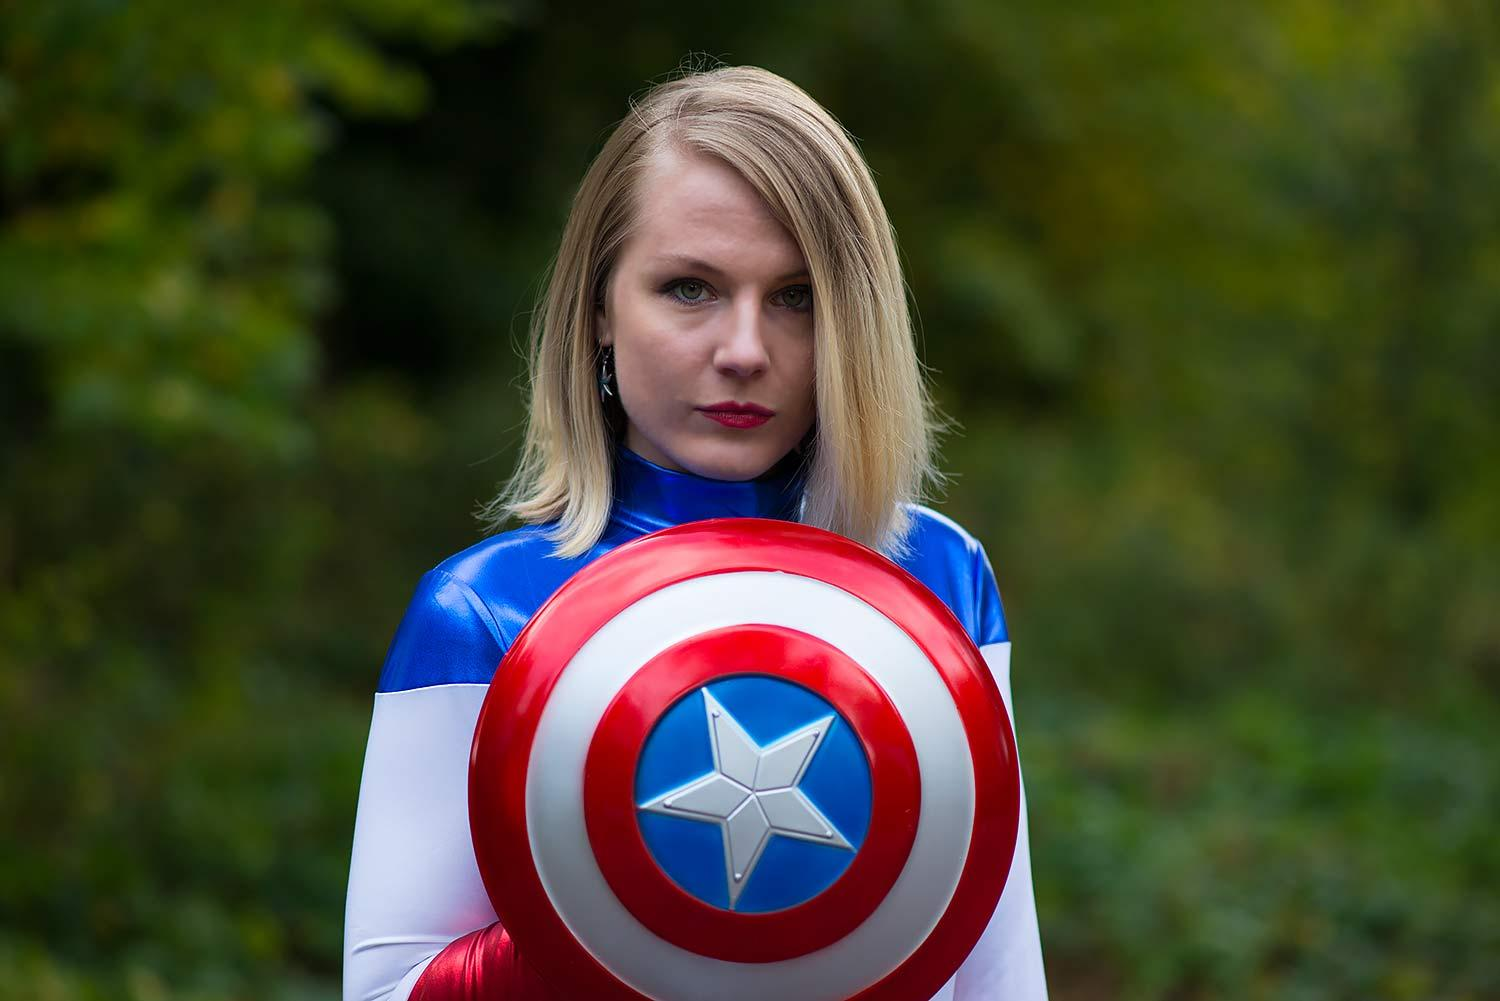 lorna-burford-miss-captain-america-costume-girl-3